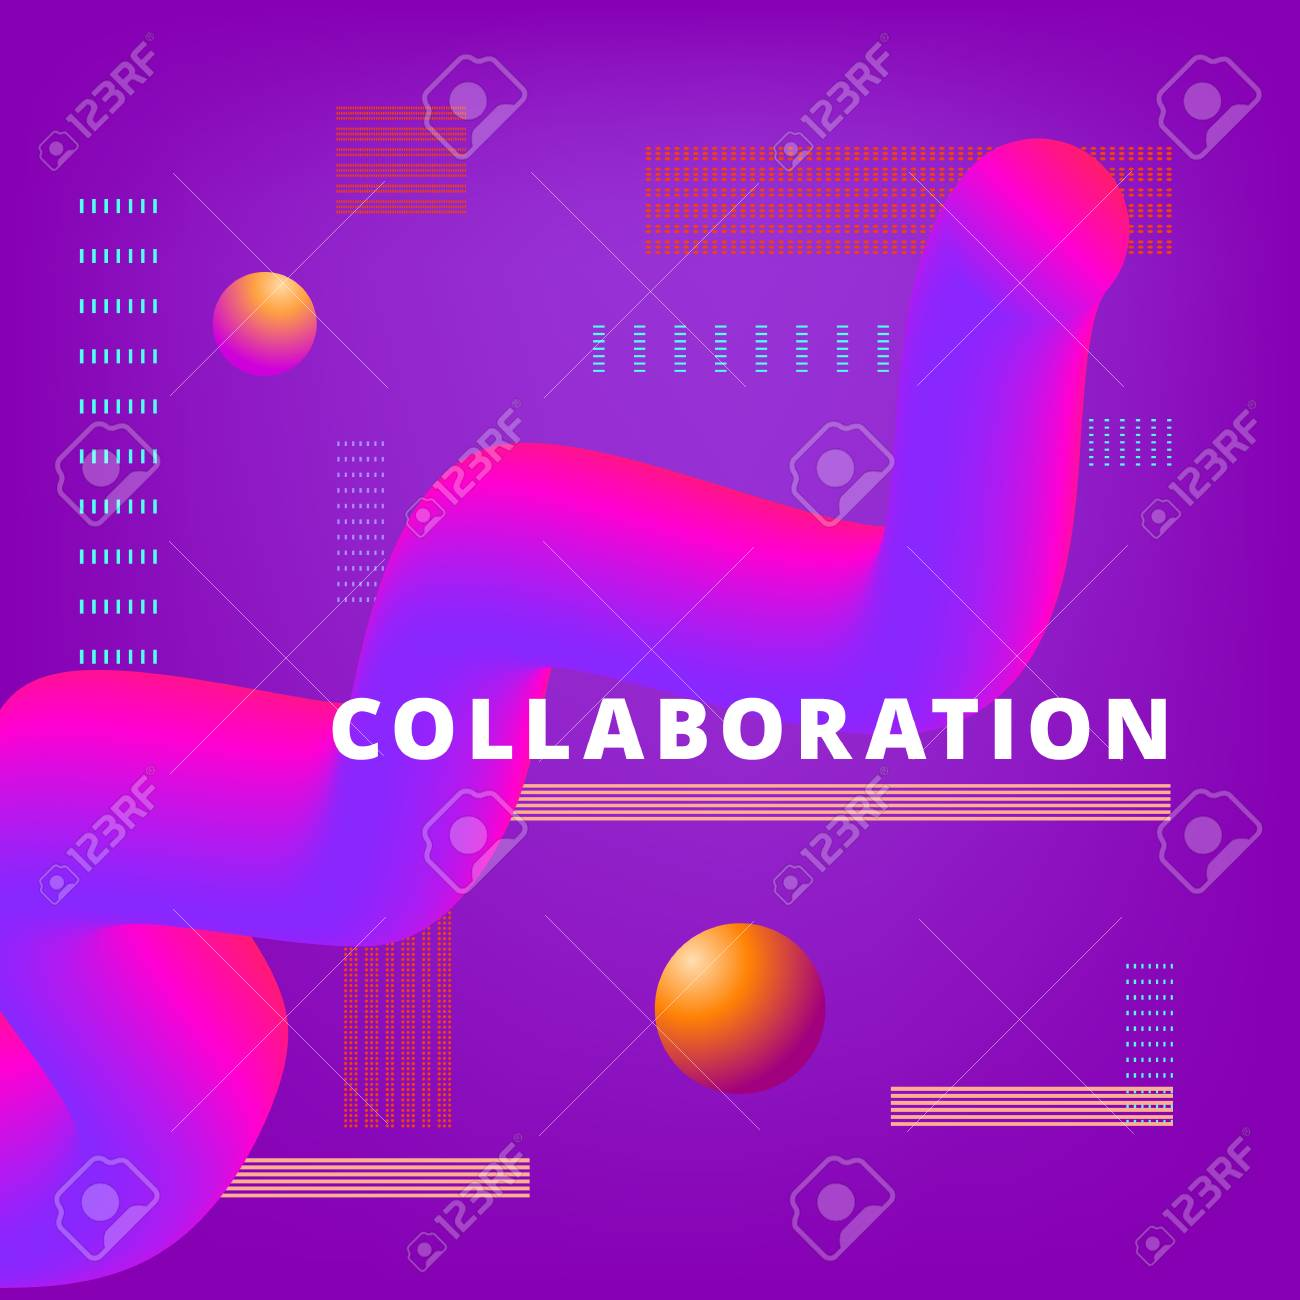 collaboration phrase on color background with 3d abstract shapes